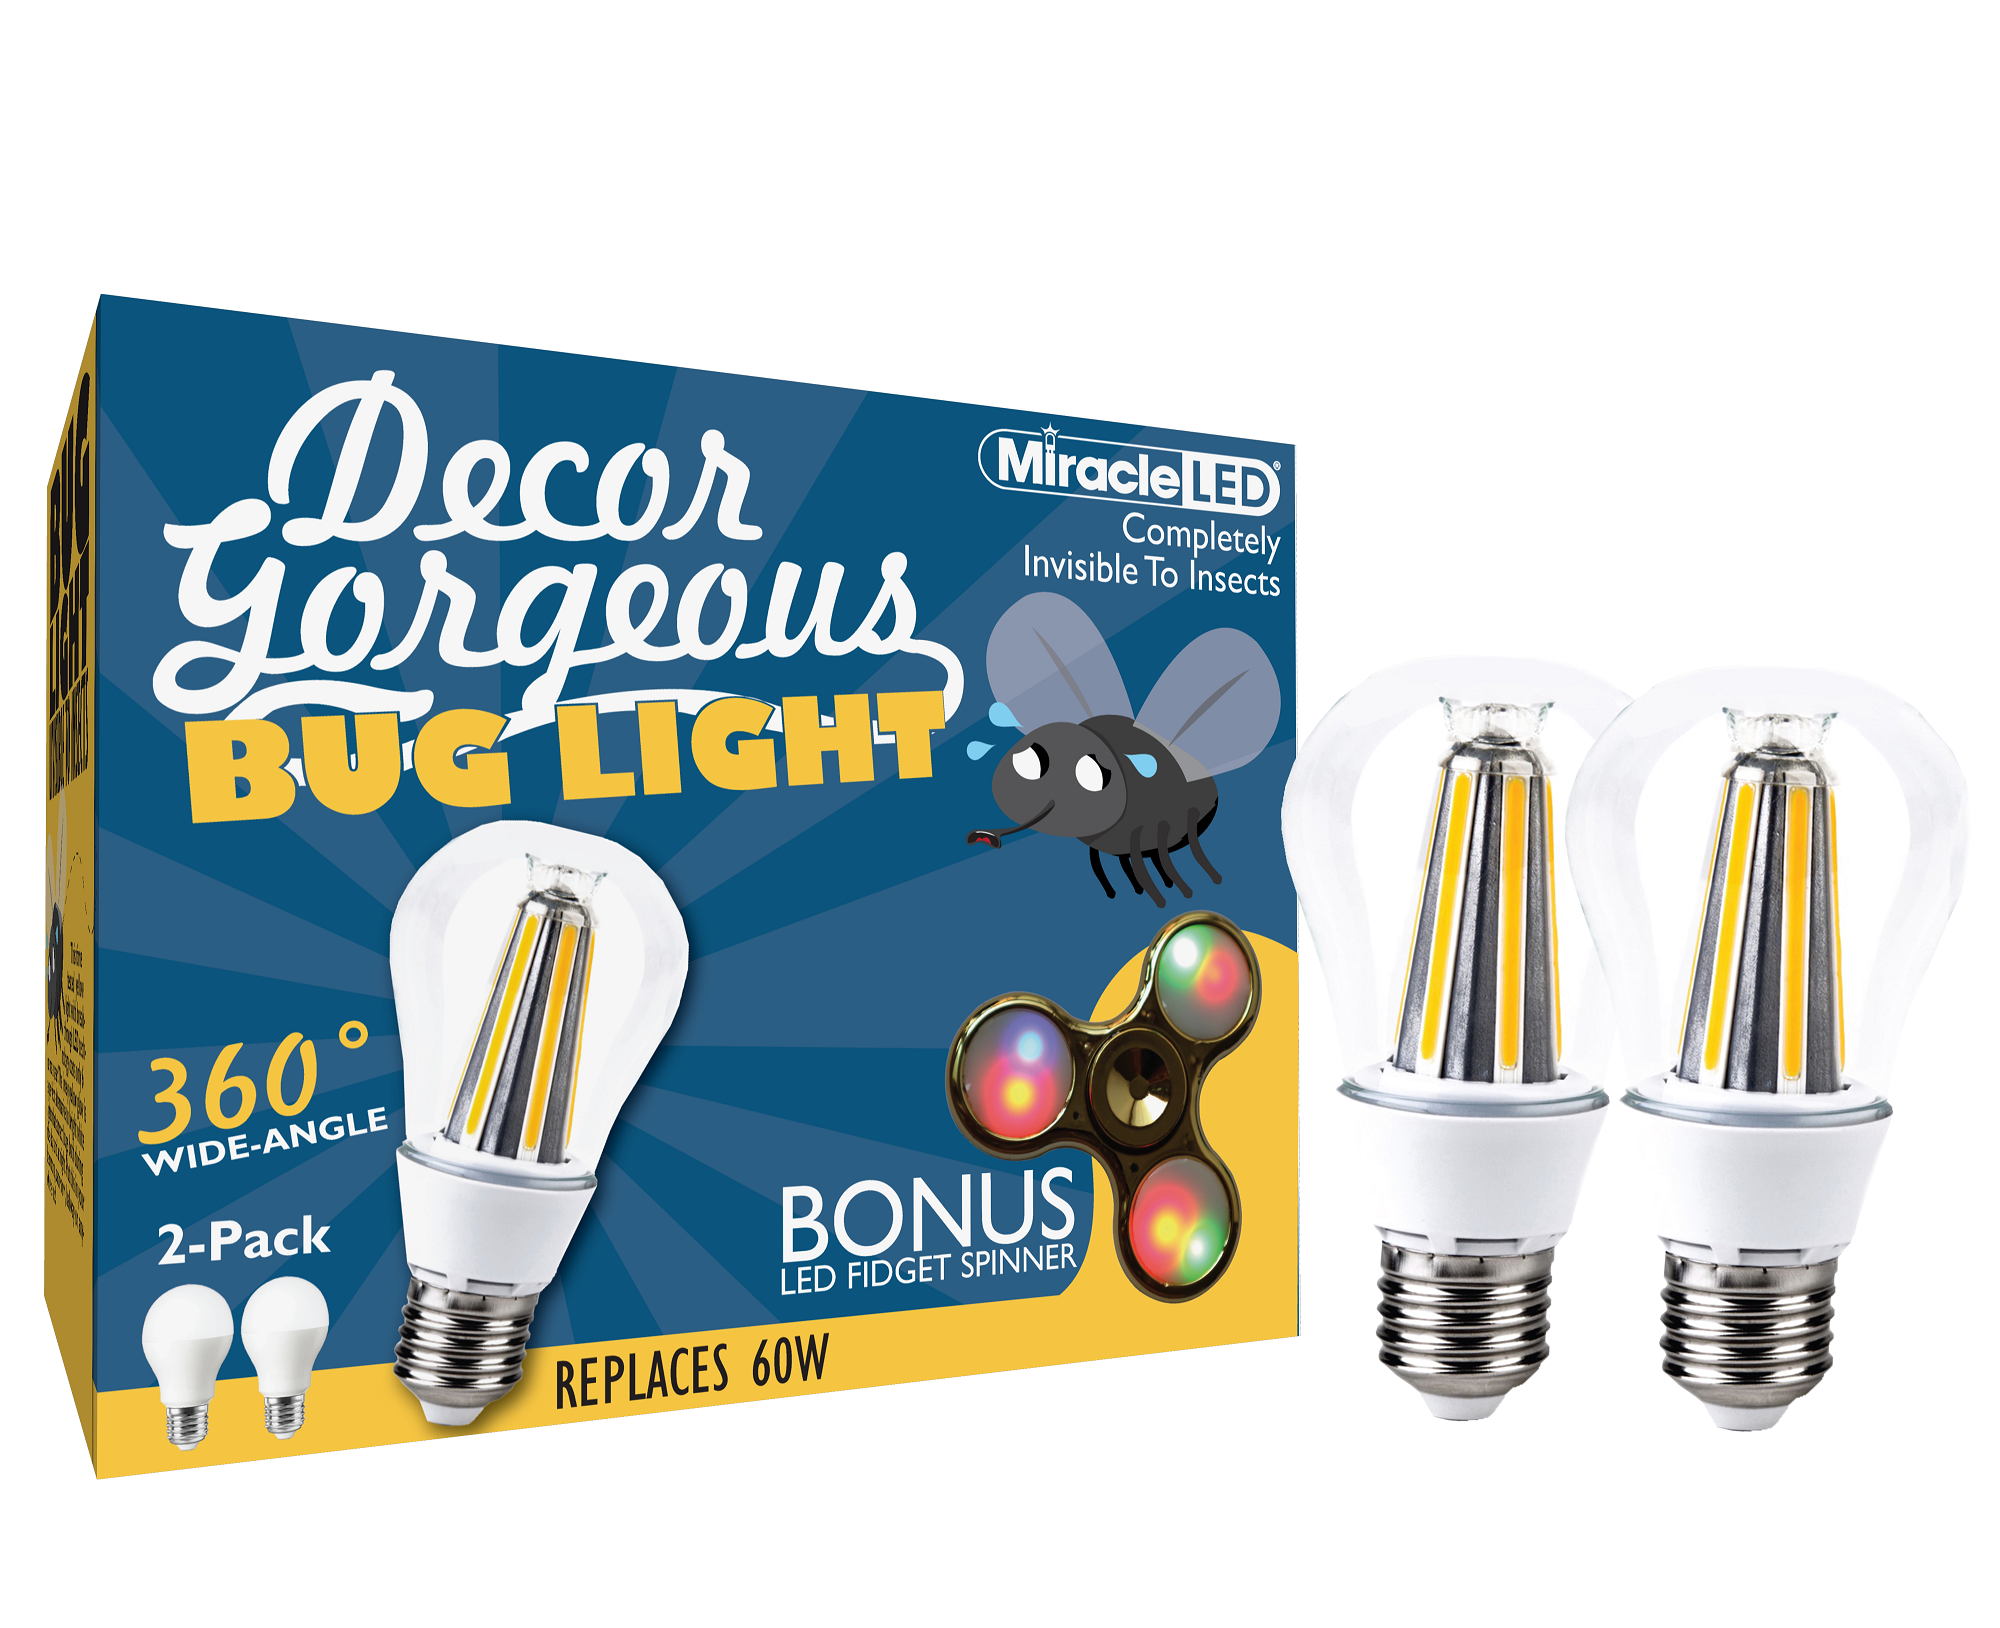 MIRACLE LED 604375 DECOR GORGEOUS OMNI LED BUG LIGHT 2PK